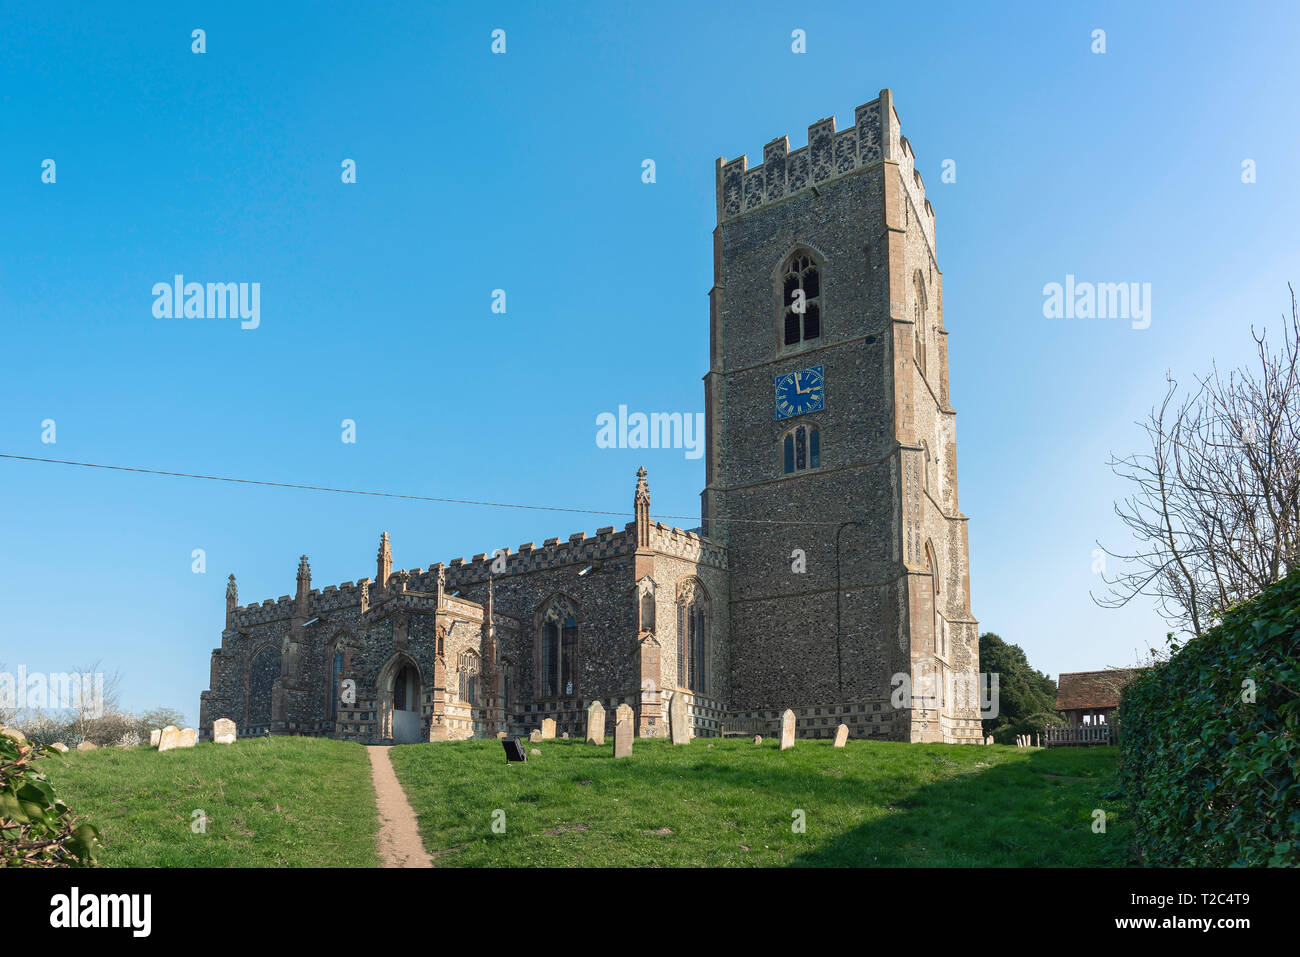 Kersey Church, view of the 14th century St Mary's Church in the Suffolk village of Kersey, England, UK. - Stock Image